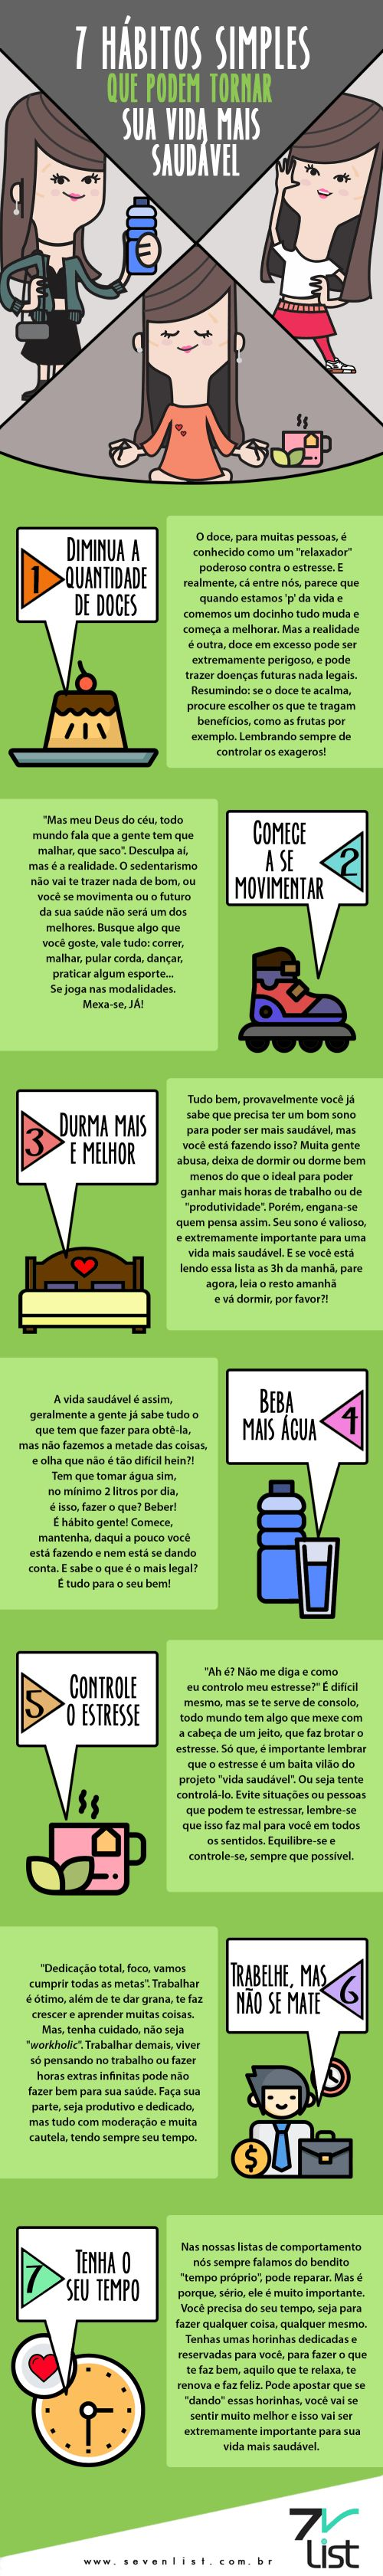 50 best Frases images on Pinterest   The words, French people and ... 5da65daf3b